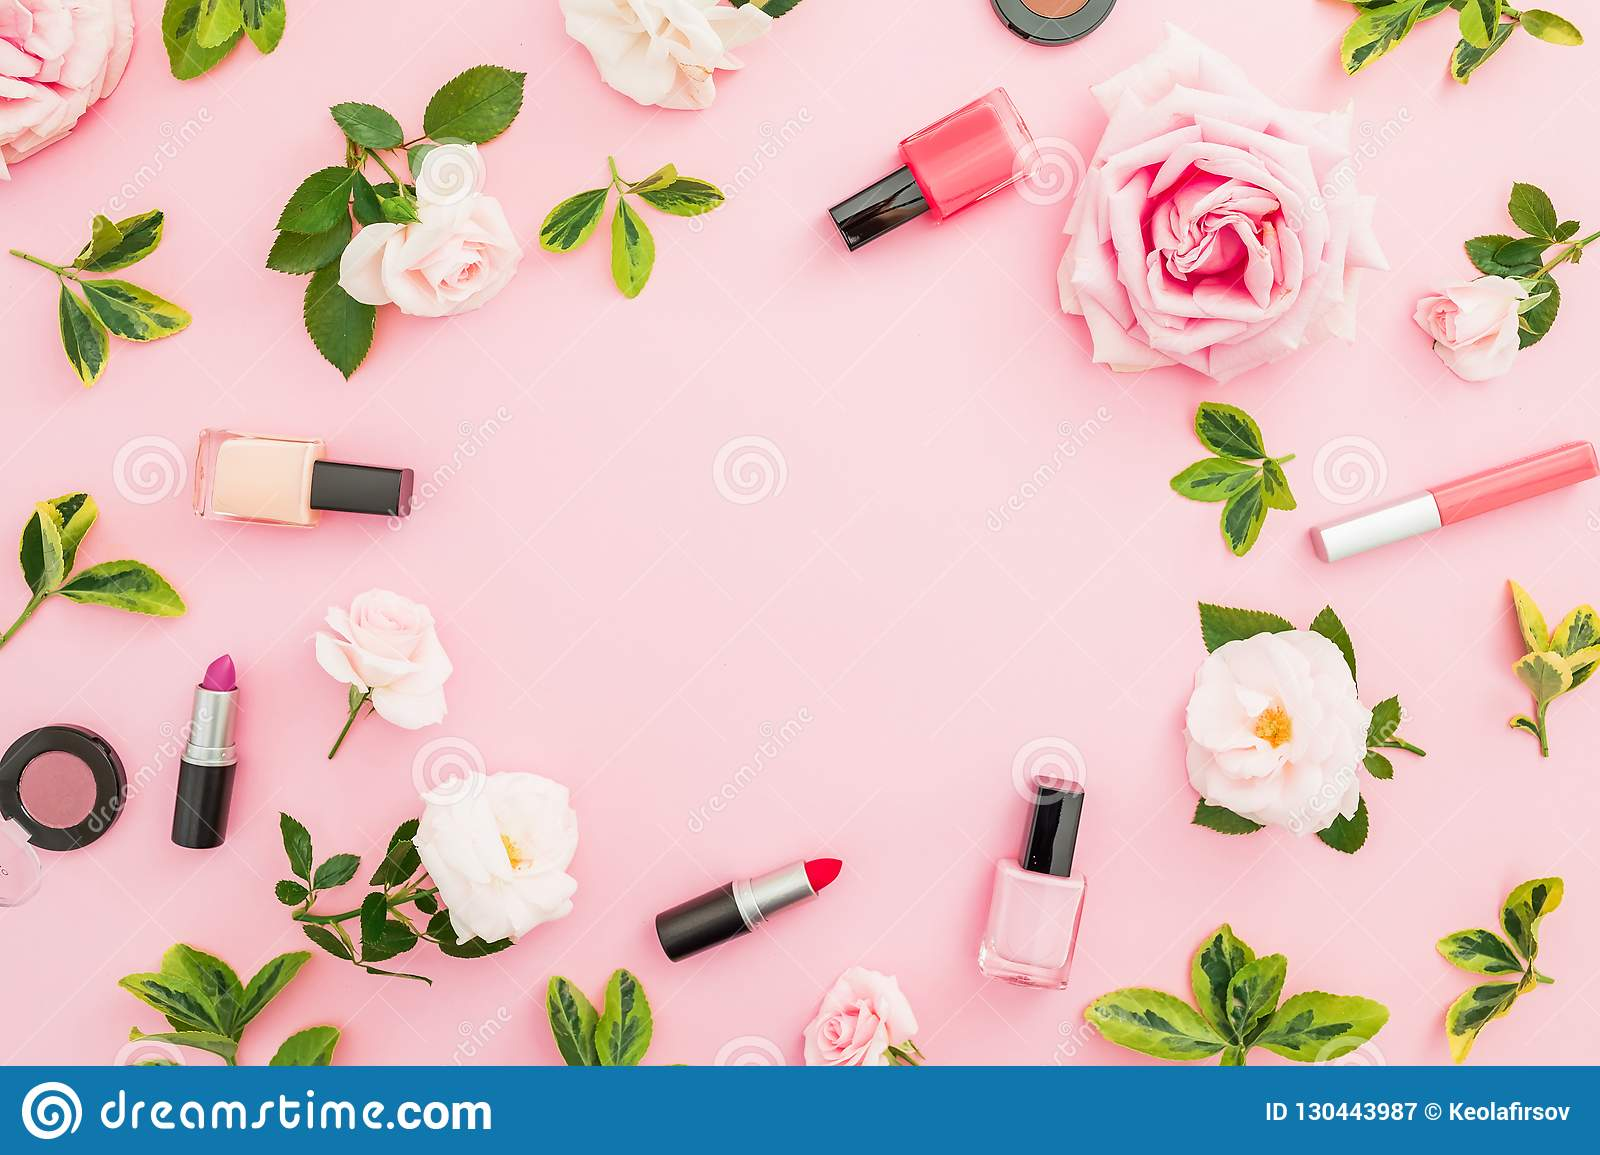 Frame Composition With Roses And Makeup Cosmetics On Pastel Pink